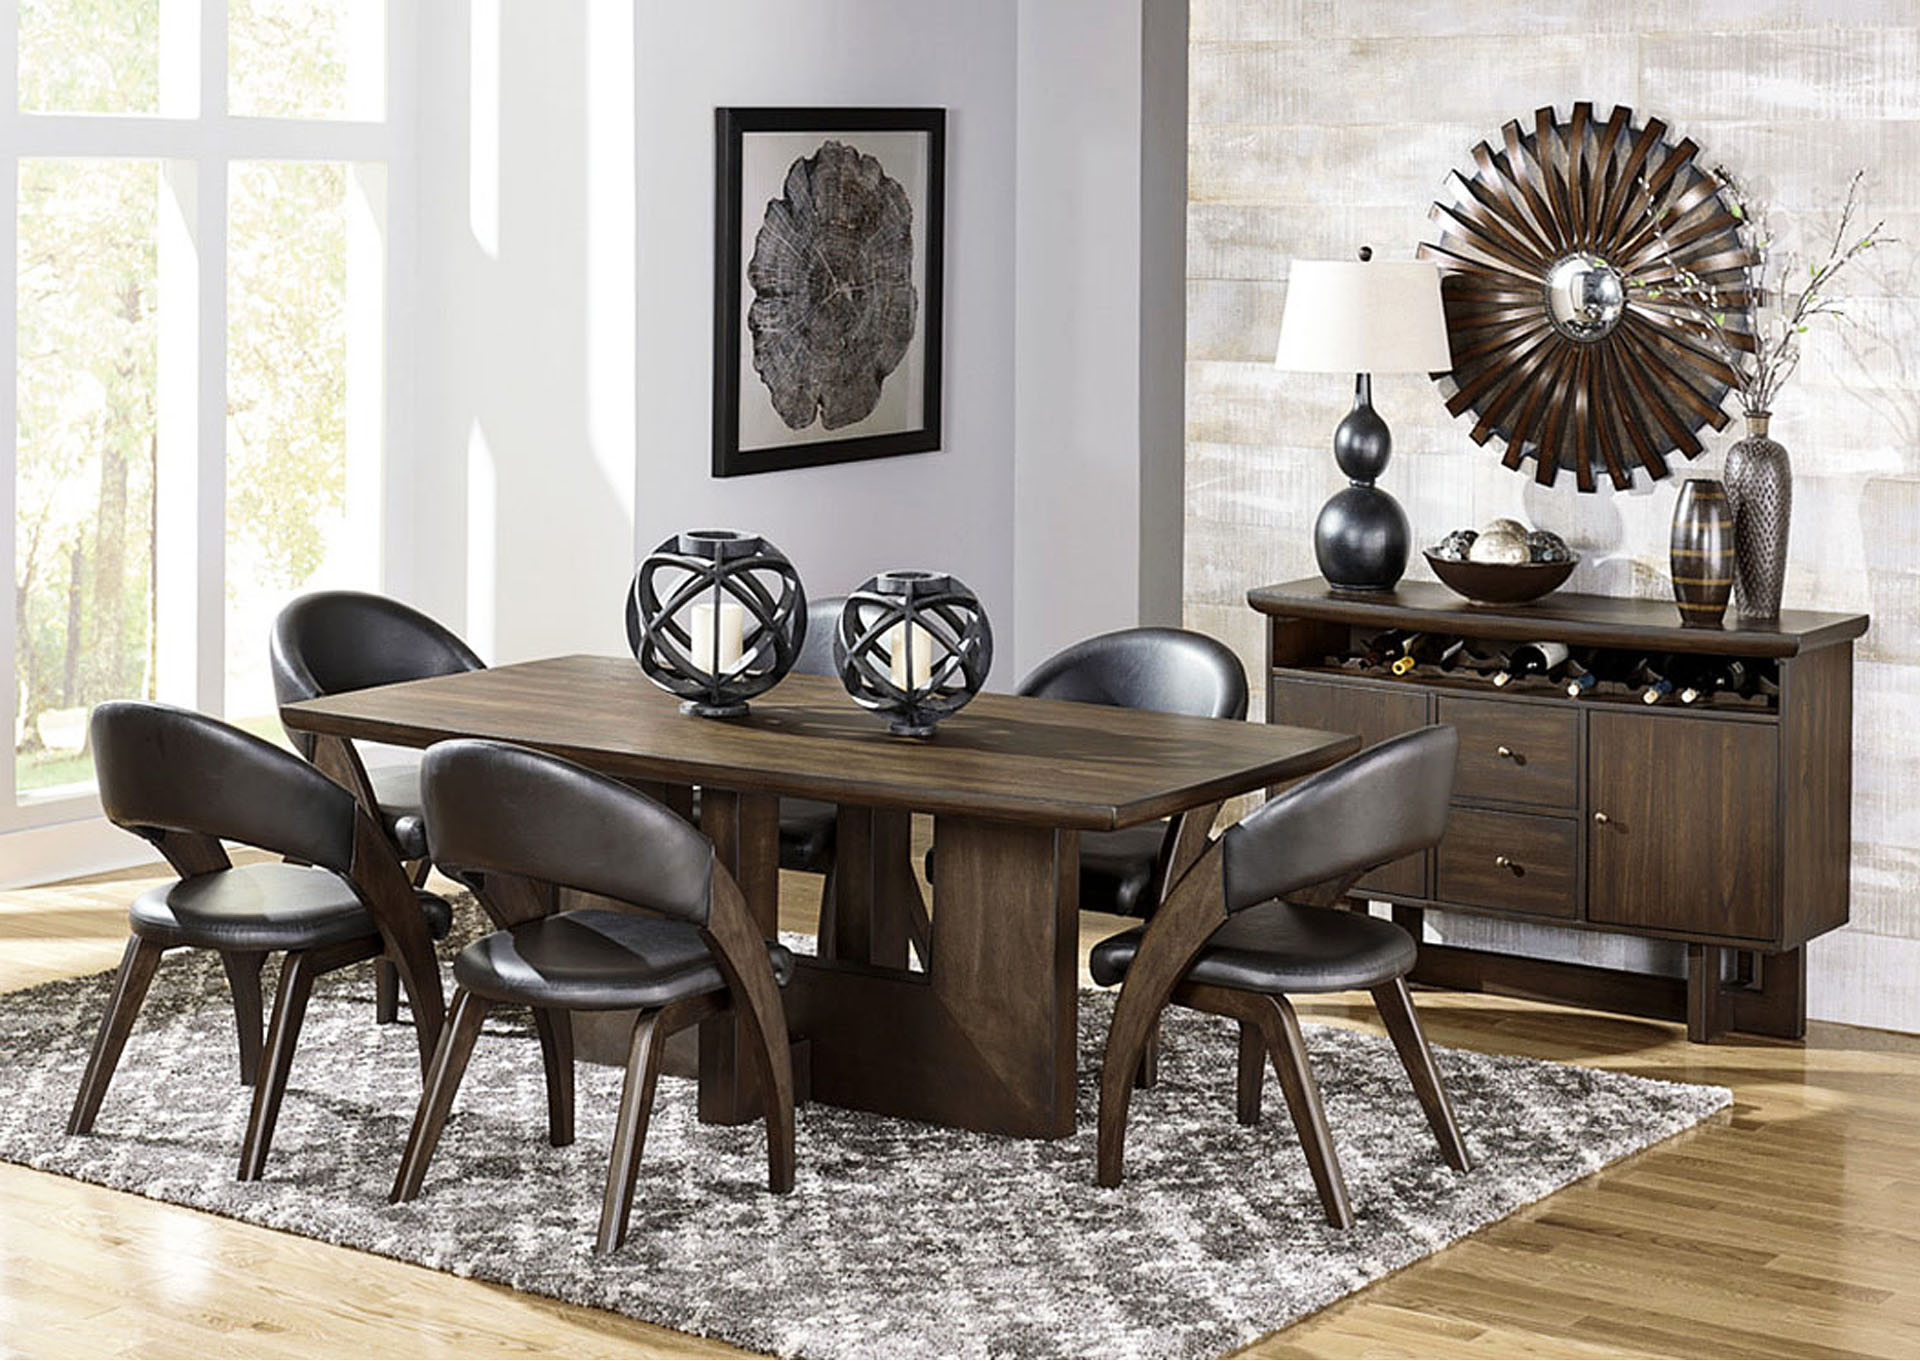 Dining Table,Homelegance